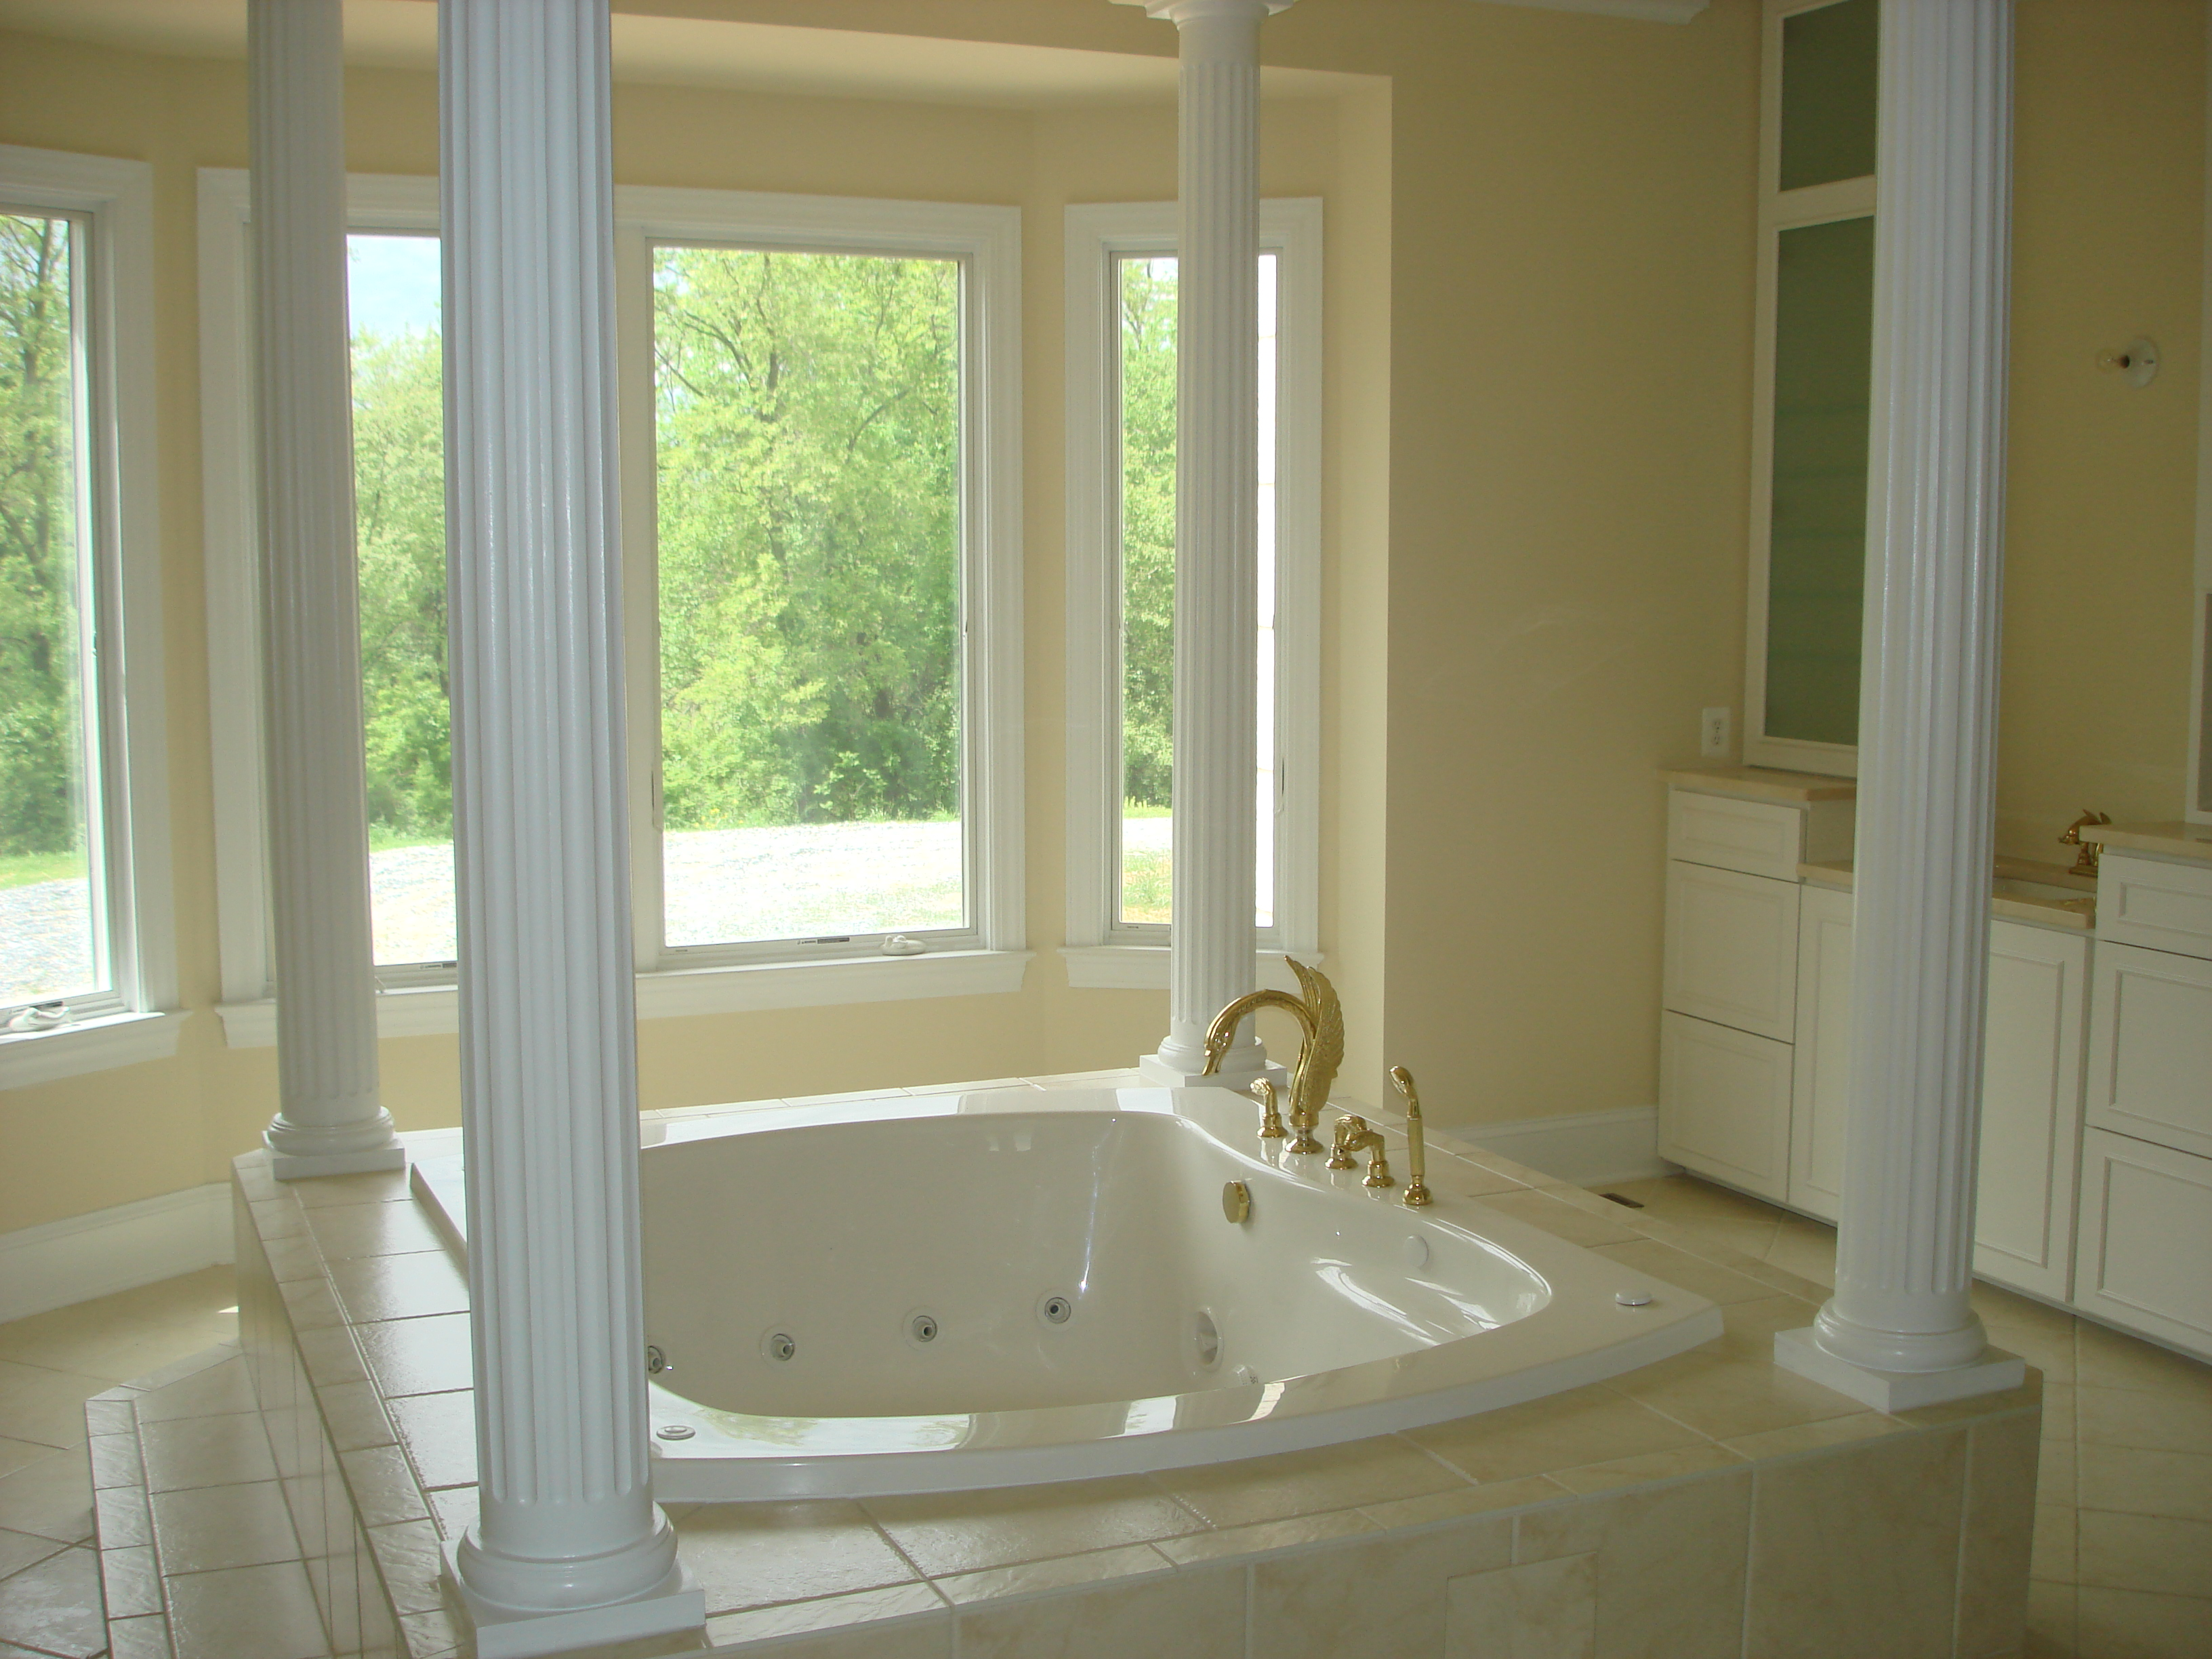 bathroom remodeling frederick md gallery kitchen remodeling frederick md Bathroom Remodeling Frederick Md gallery